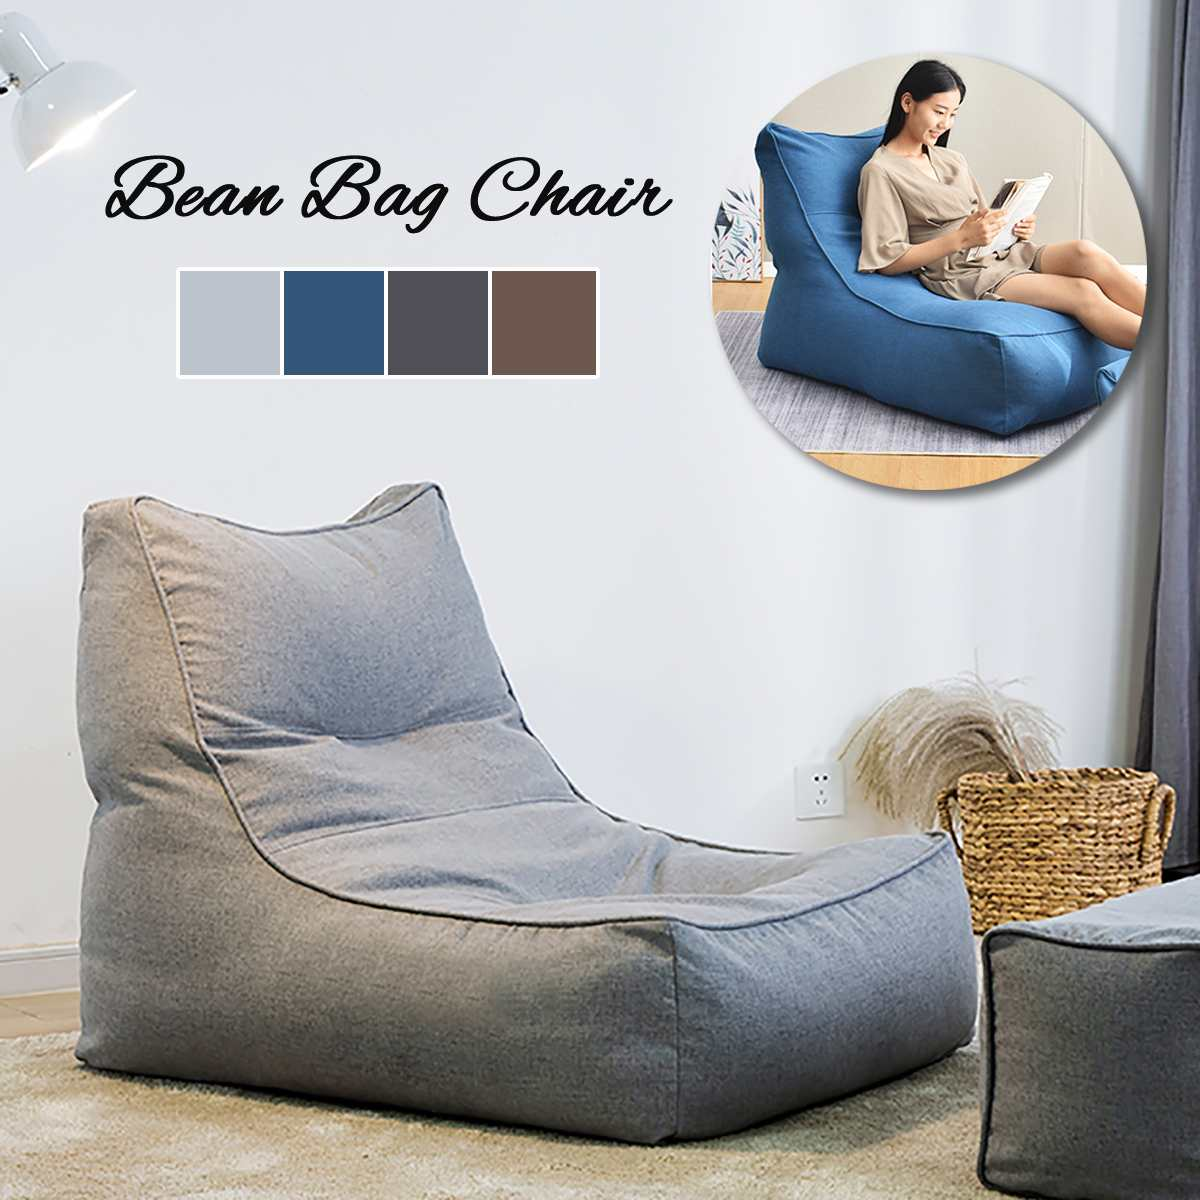 Superb Us 48 95 40 Off Lazy Cotton Linen Bean Bag Chair Sofa Cover No Filling In Solid Colors Lounger Seat Pouf Puff Couch For Home Office Game Party In Ibusinesslaw Wood Chair Design Ideas Ibusinesslaworg